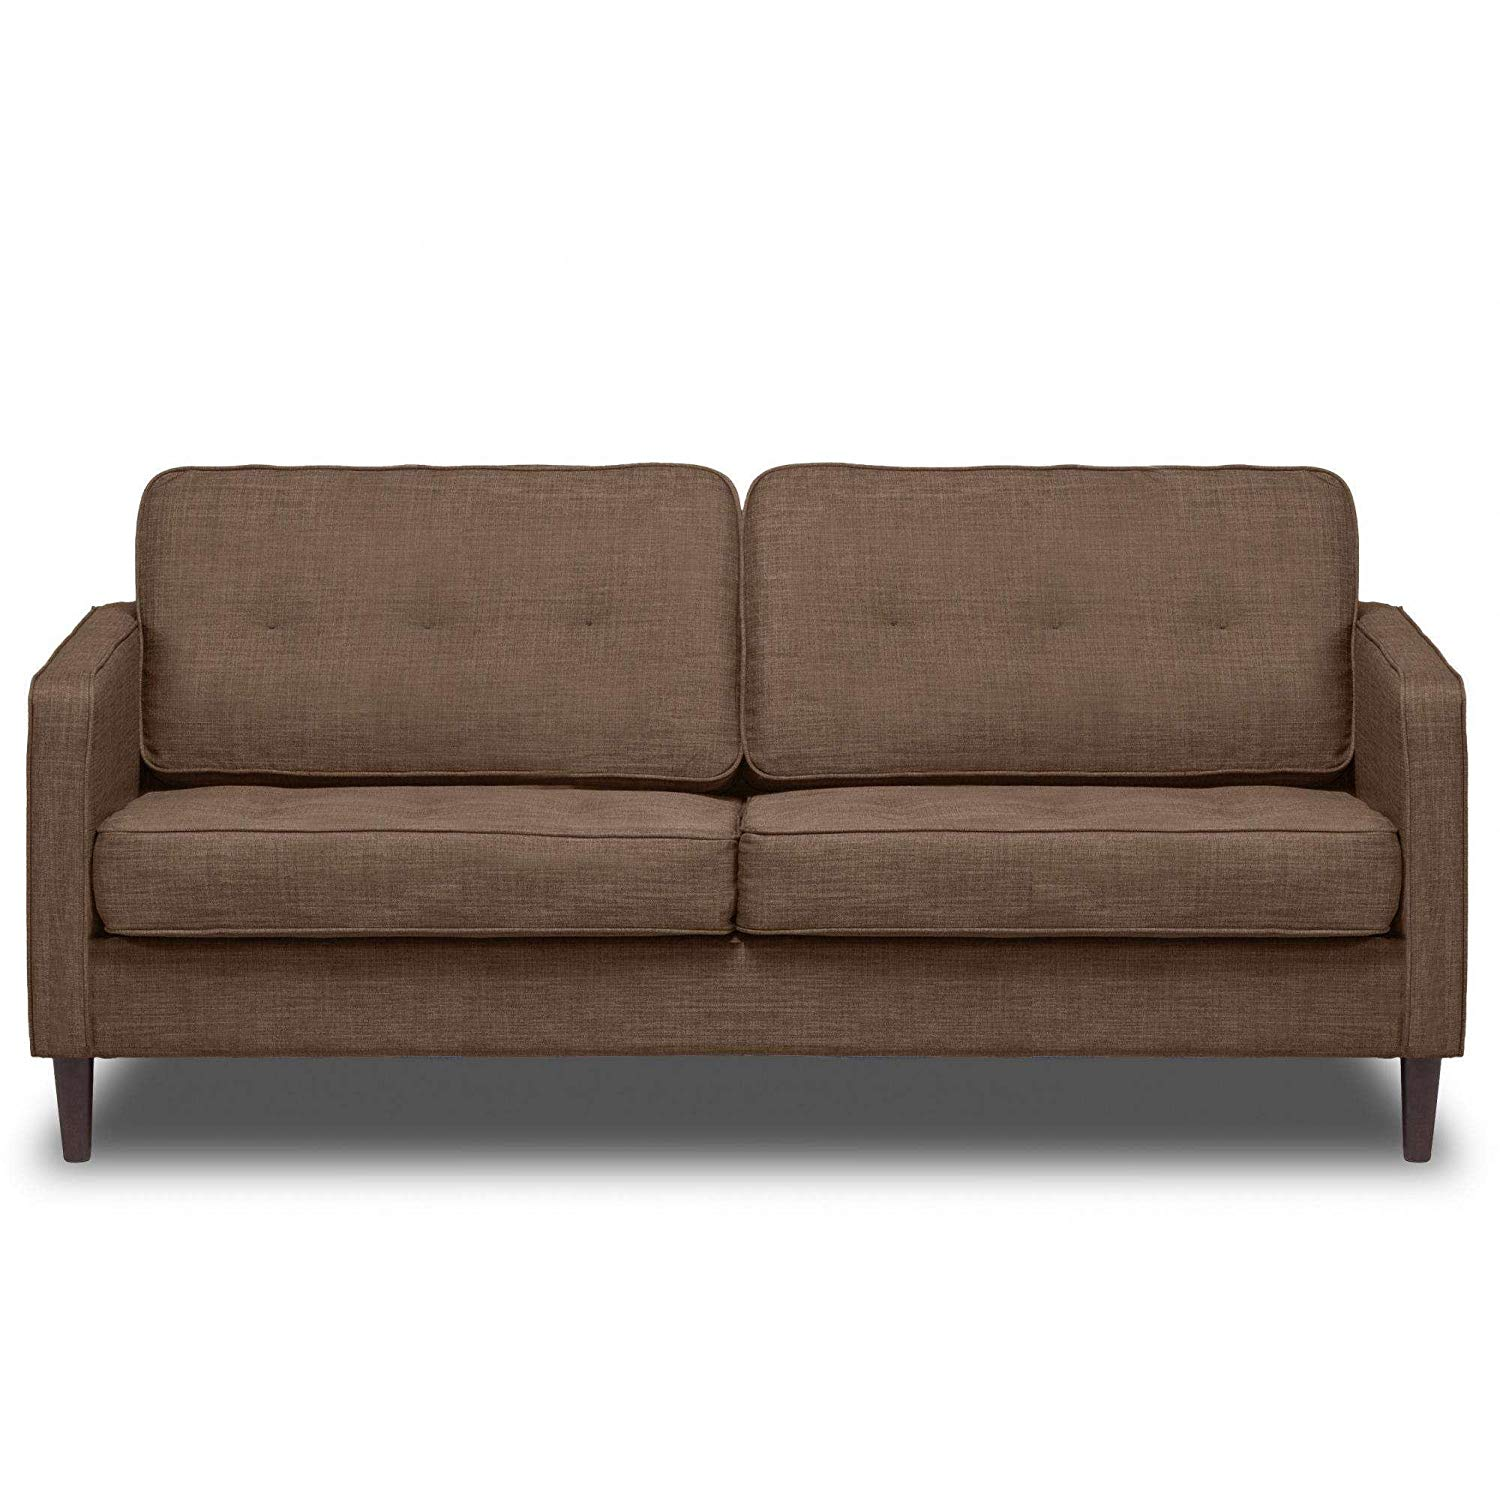 """Sandstone 66"""" Upholstered Sofa, Pocket Coil Seat Cushions, Solid Wood Legs, Hardwood Solids, Metal Seat Frame, Removable Slip Cover, Bundle with Our Expert Guide with Tips for Home Arrangement"""